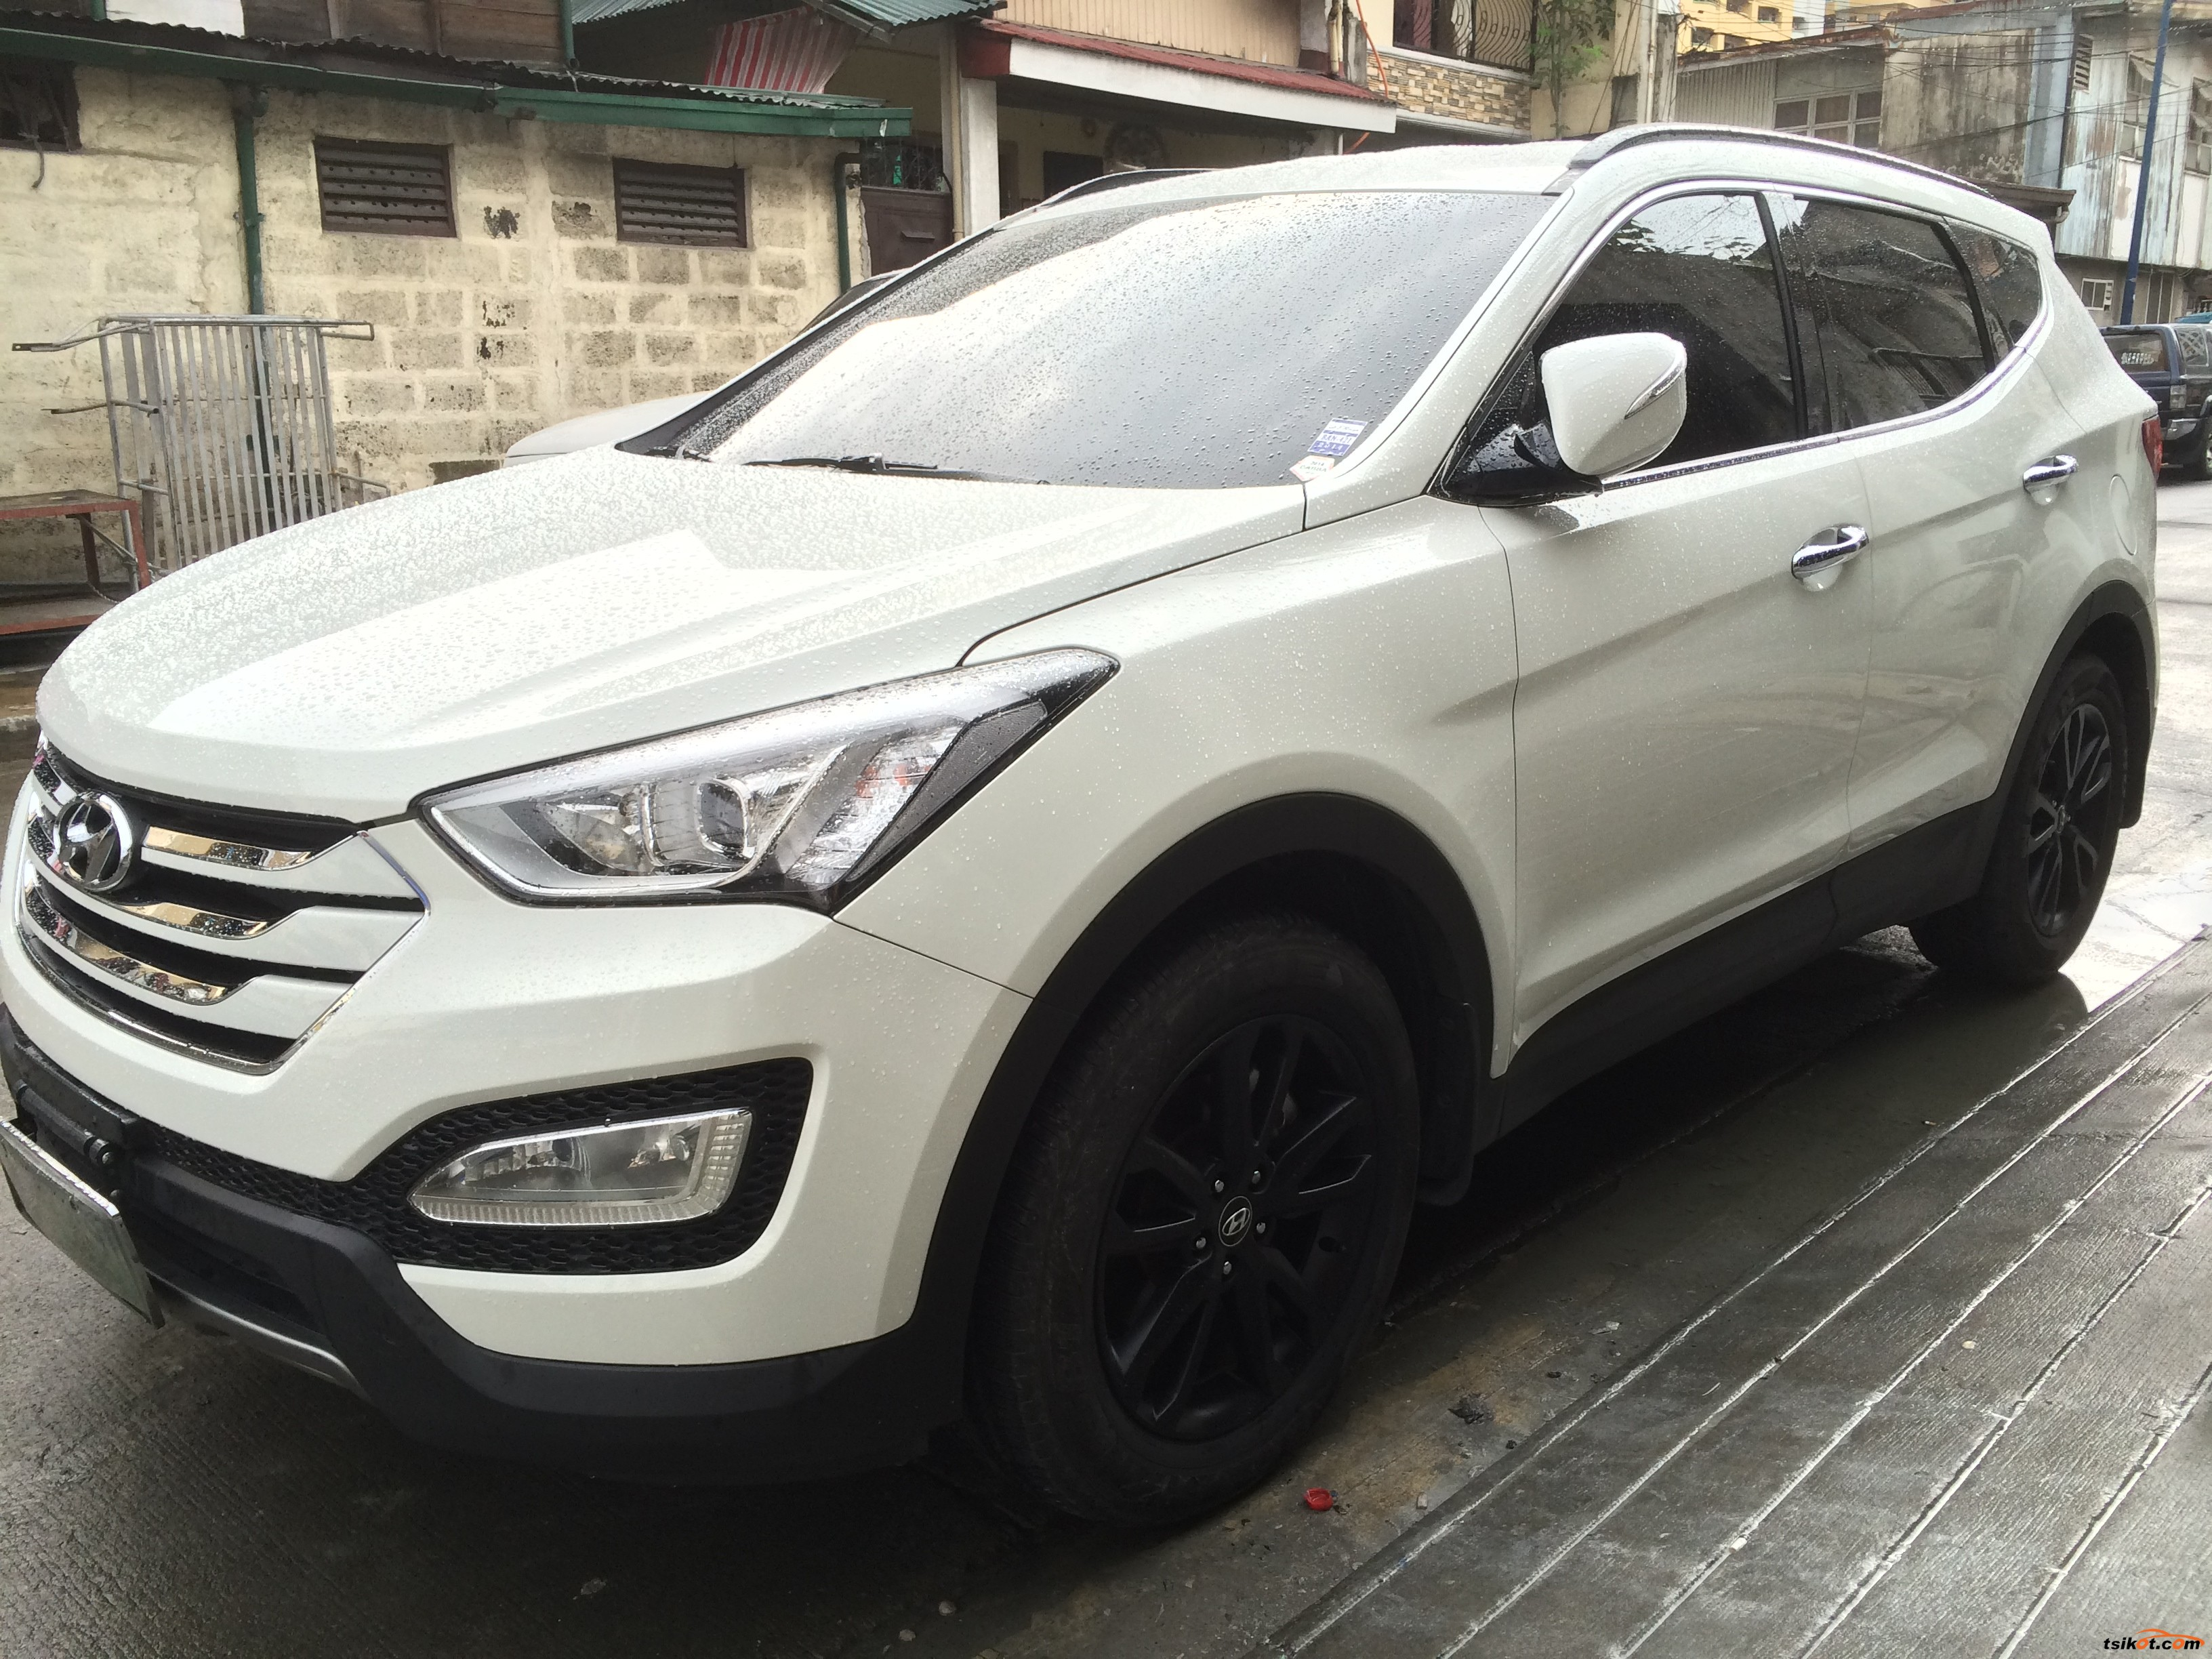 hyundai santa fe 2013 car for sale metro manila. Black Bedroom Furniture Sets. Home Design Ideas